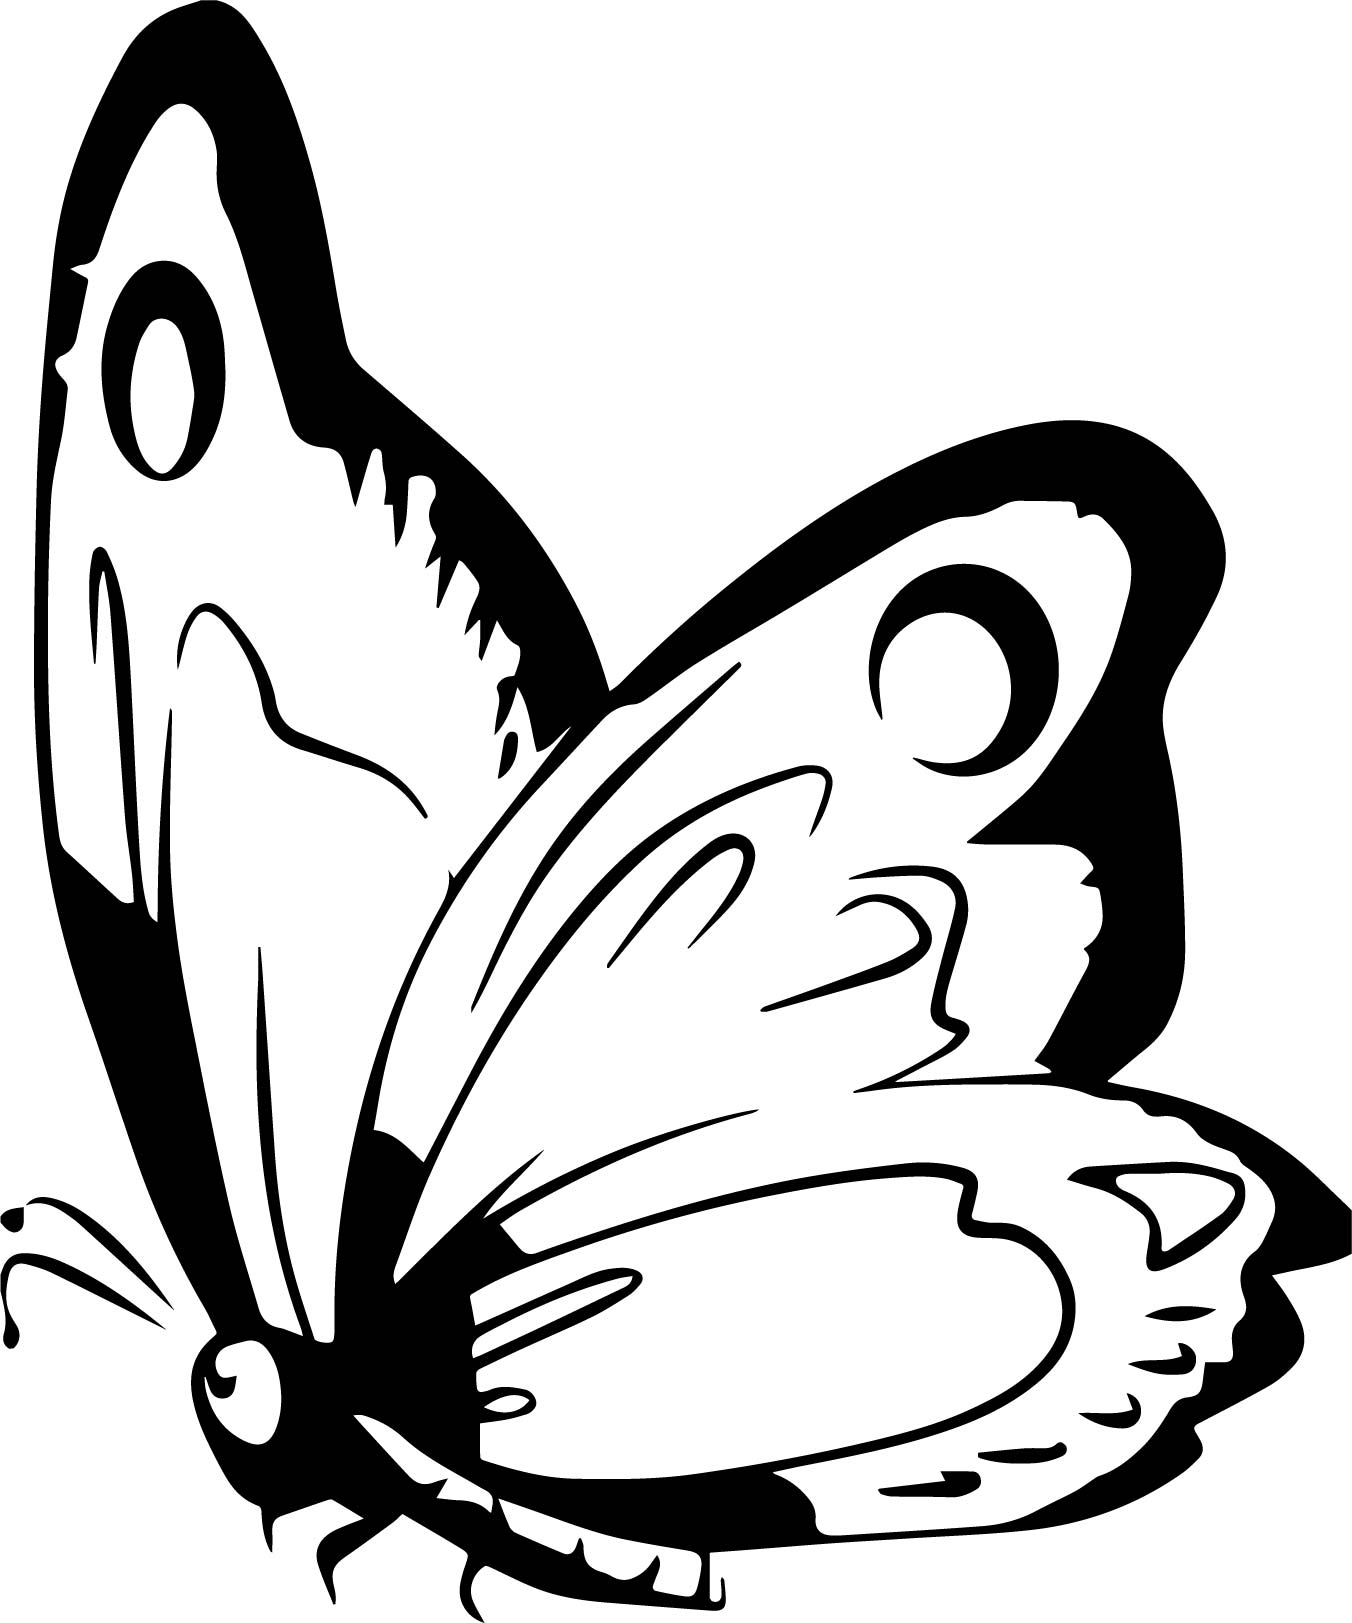 1352x1623 Coloring Pages Animals Free Butterfly Adult Coloring Pages